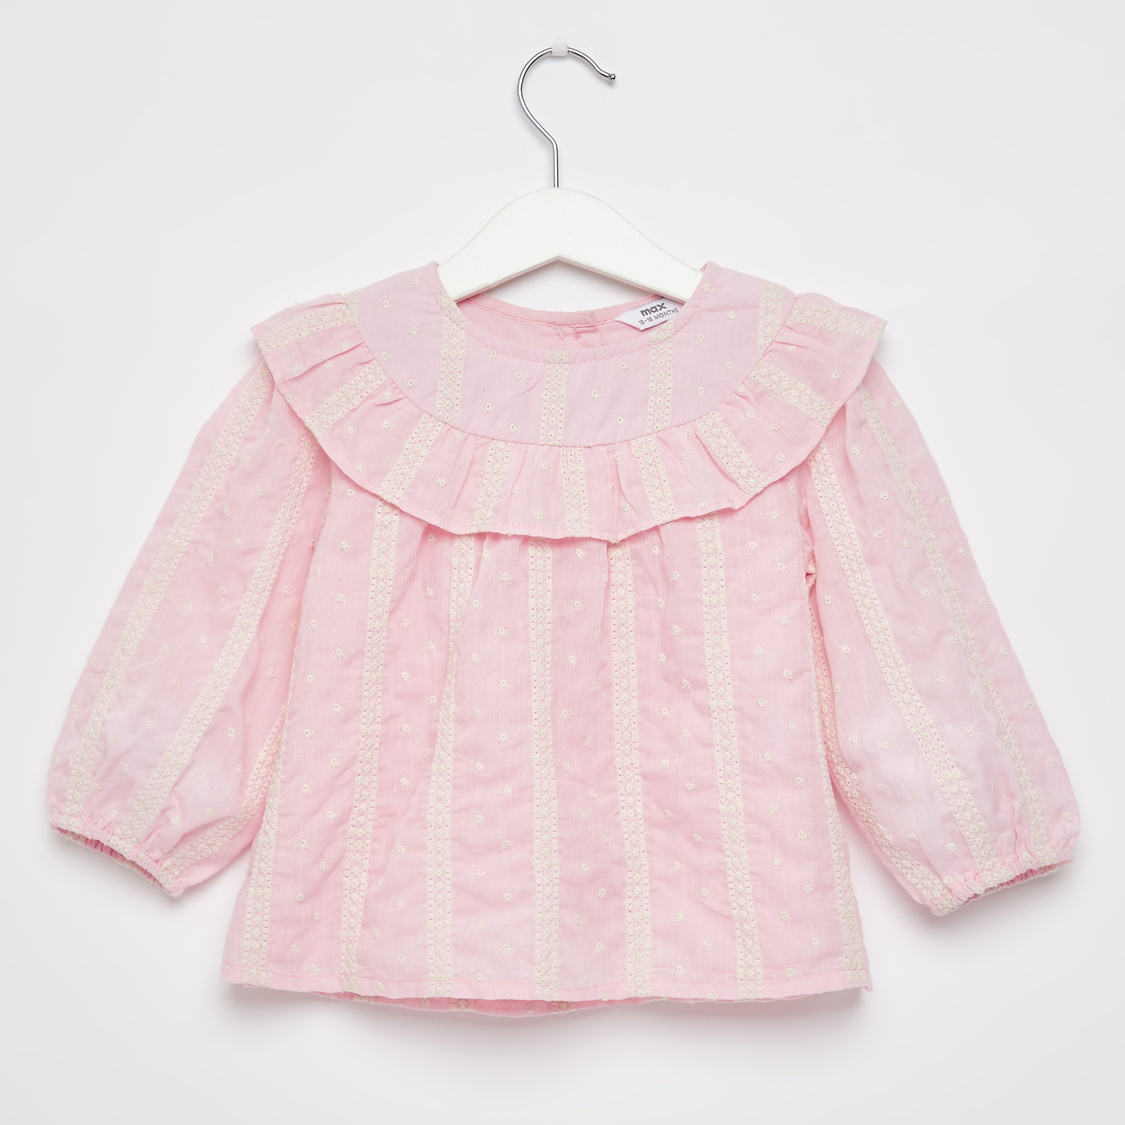 Embroidered Top with Long Sleeves and Frill Detail